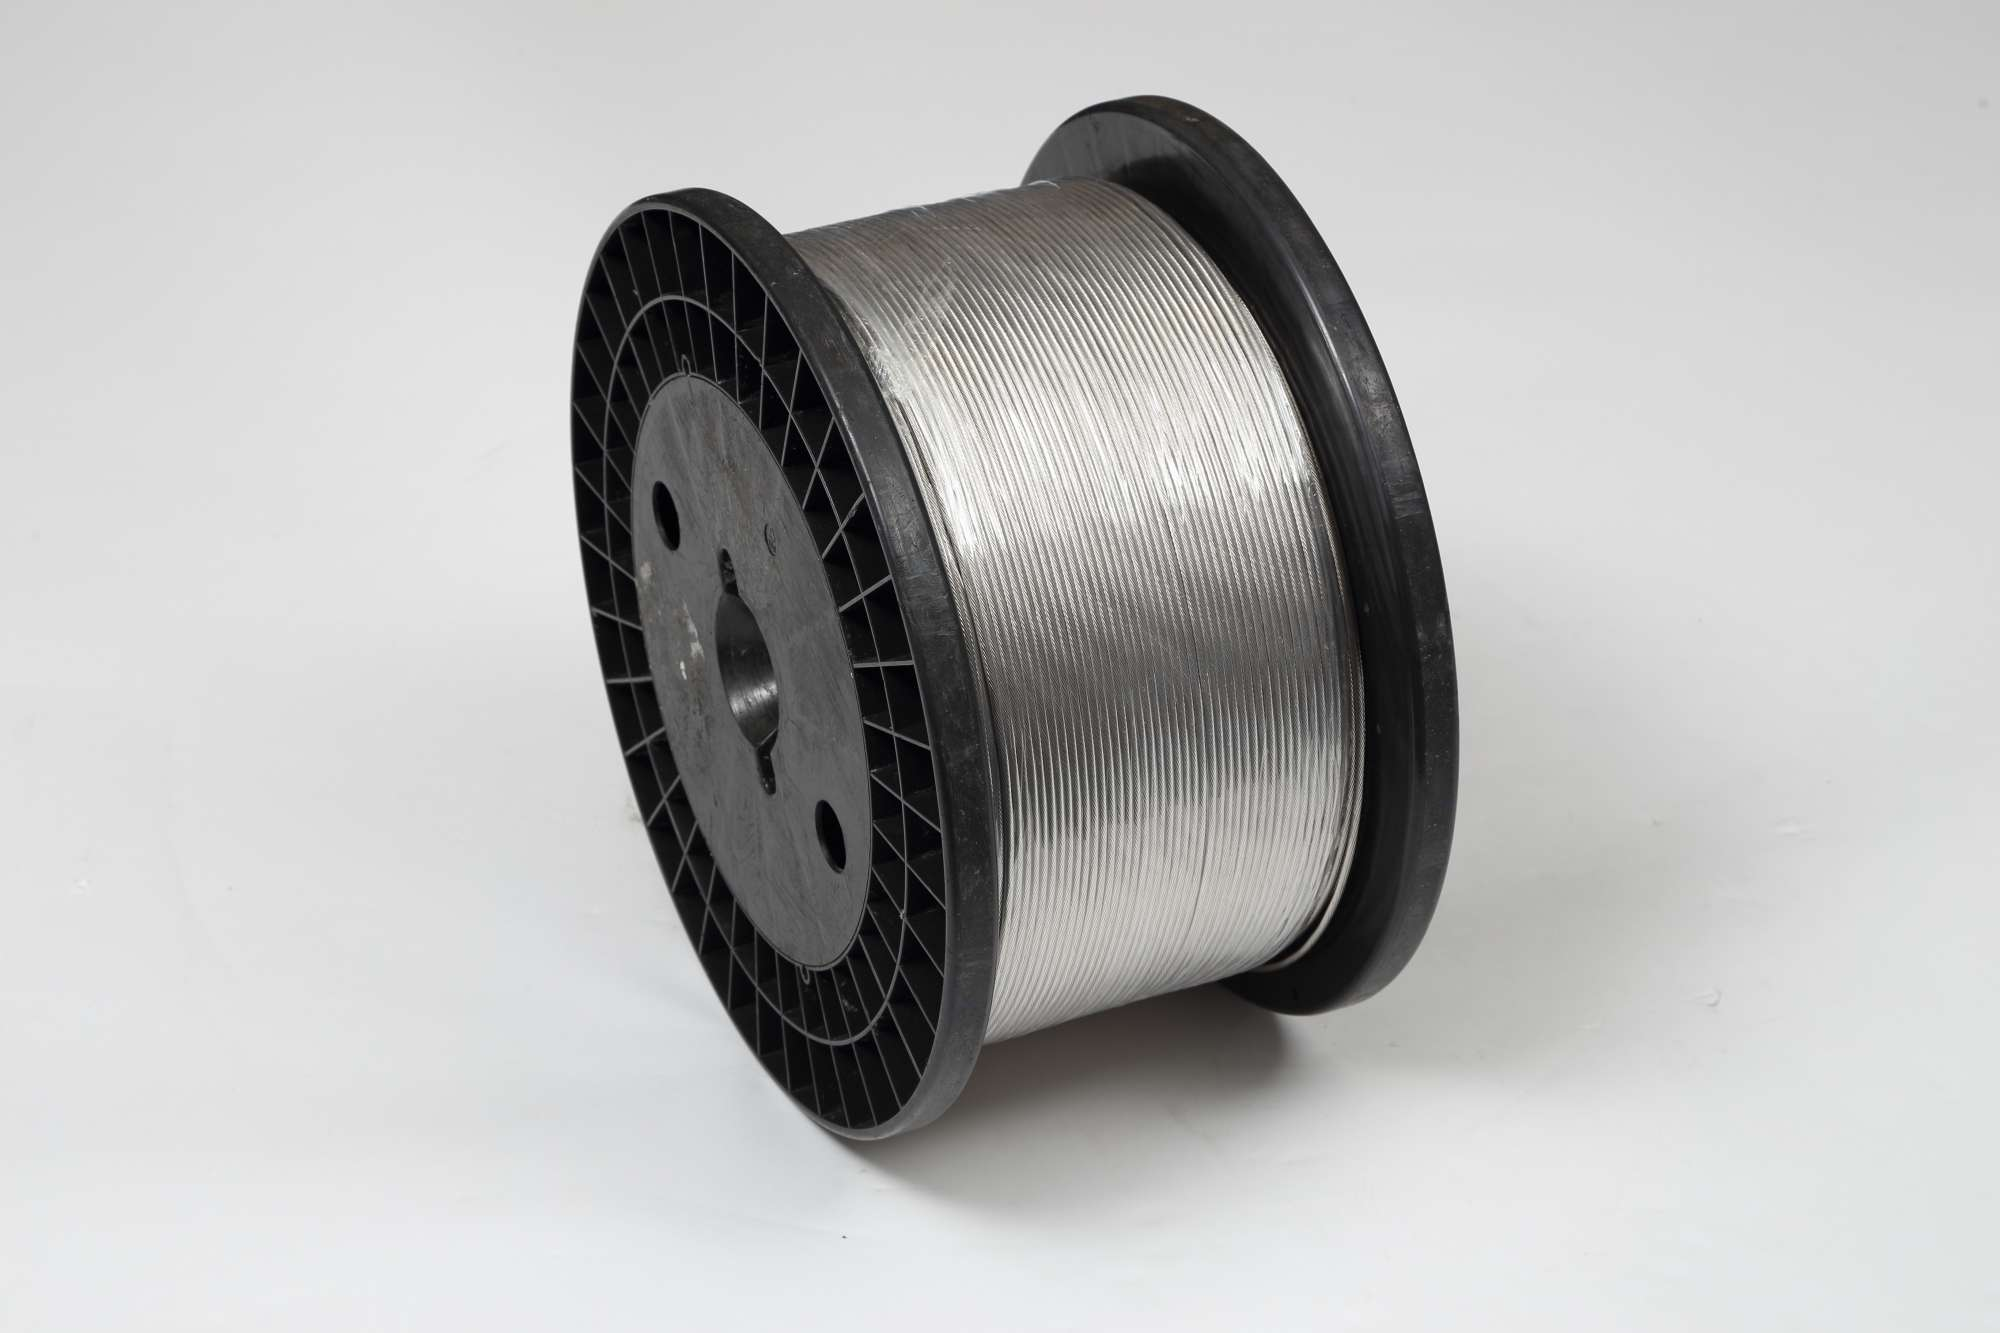 Image of 19 Strand 60:16 Nickel Chrome heating element core wire per metre